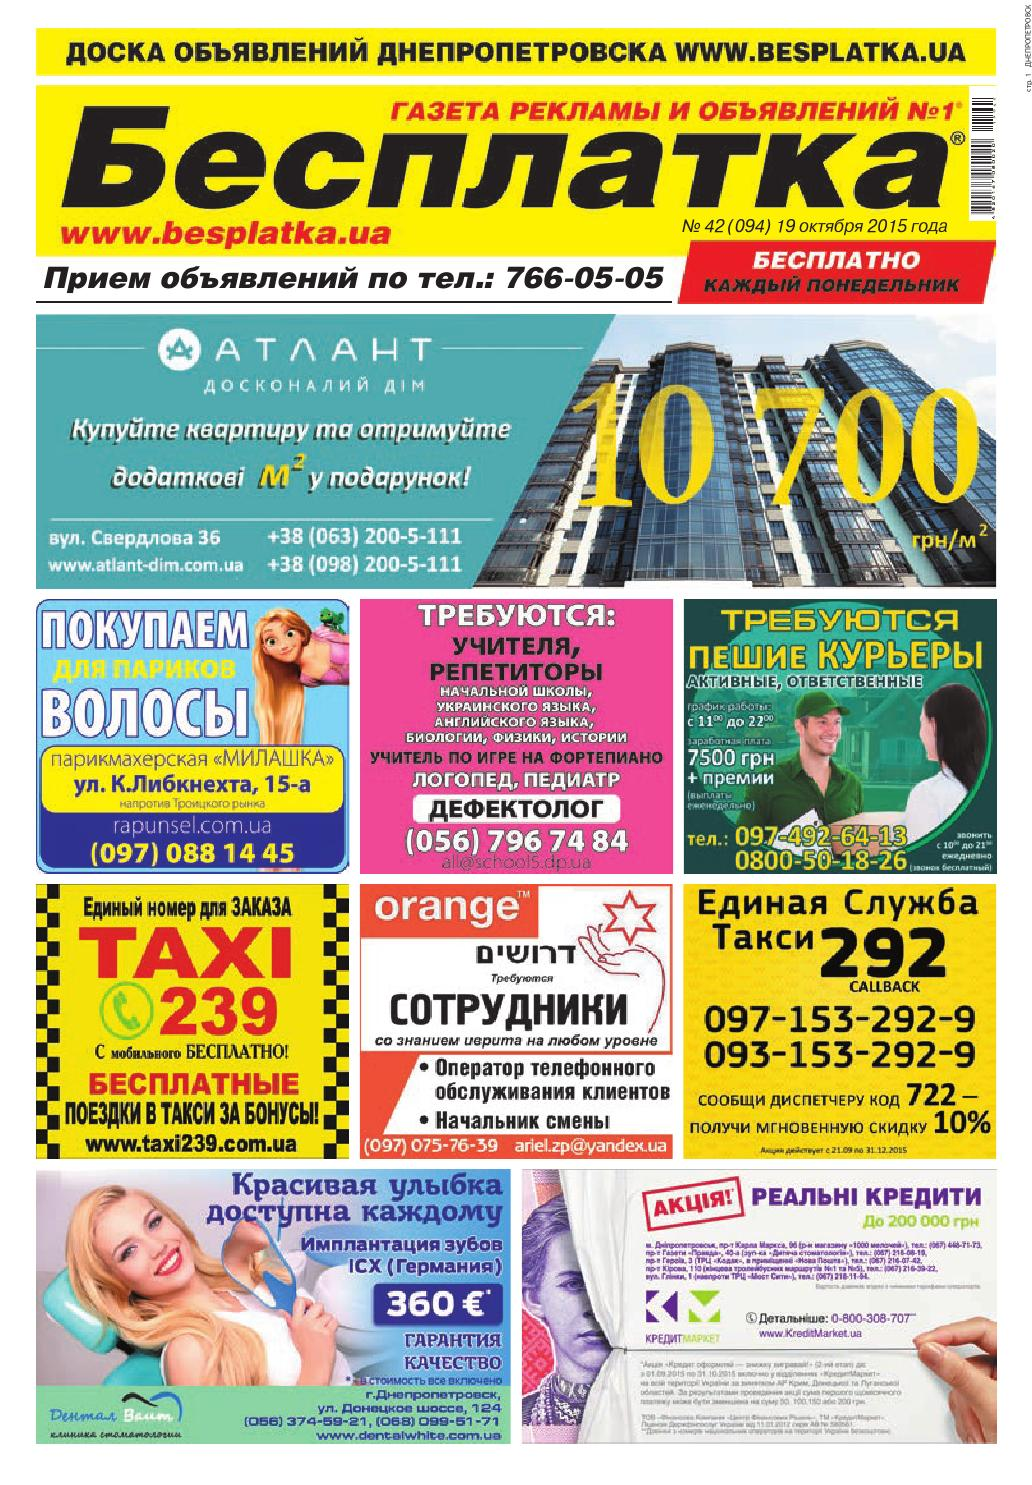 Besplatka  42 Днепропетровск by besplatka ukraine - issuu 7486743a29c